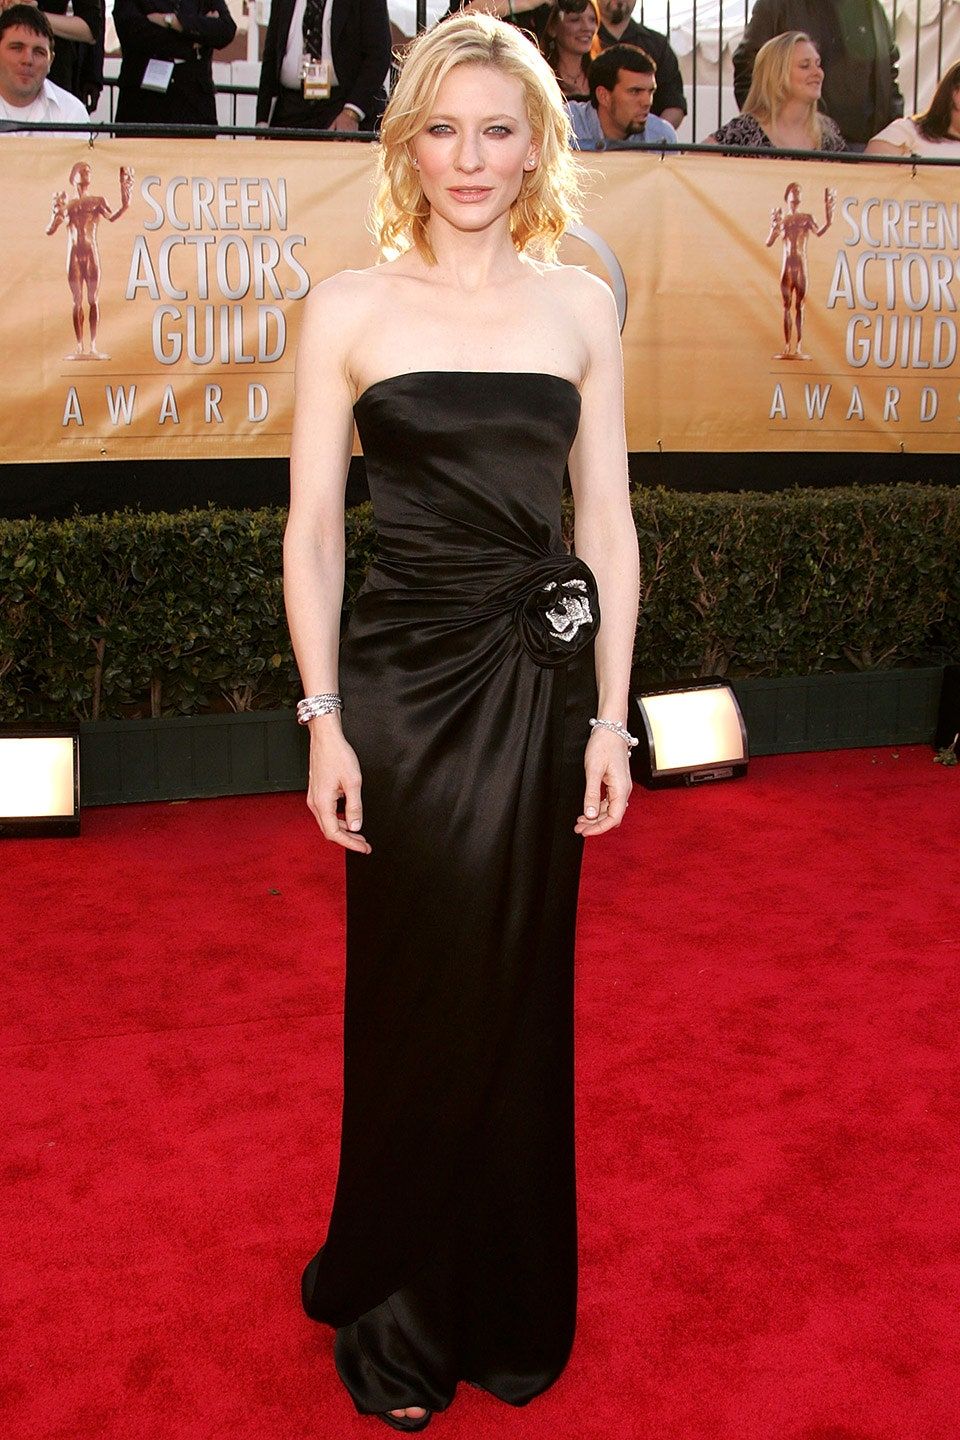 4_she_looked_statuesque_in_a_minimalist_black_gown_at_the_2005_sag_awards_i_wore_a_really_tight_dress_that_s_very_ungracious_walking_up_those_stairs_she_said_as_she_accepted_the_best-supporting-actress_award.jpg